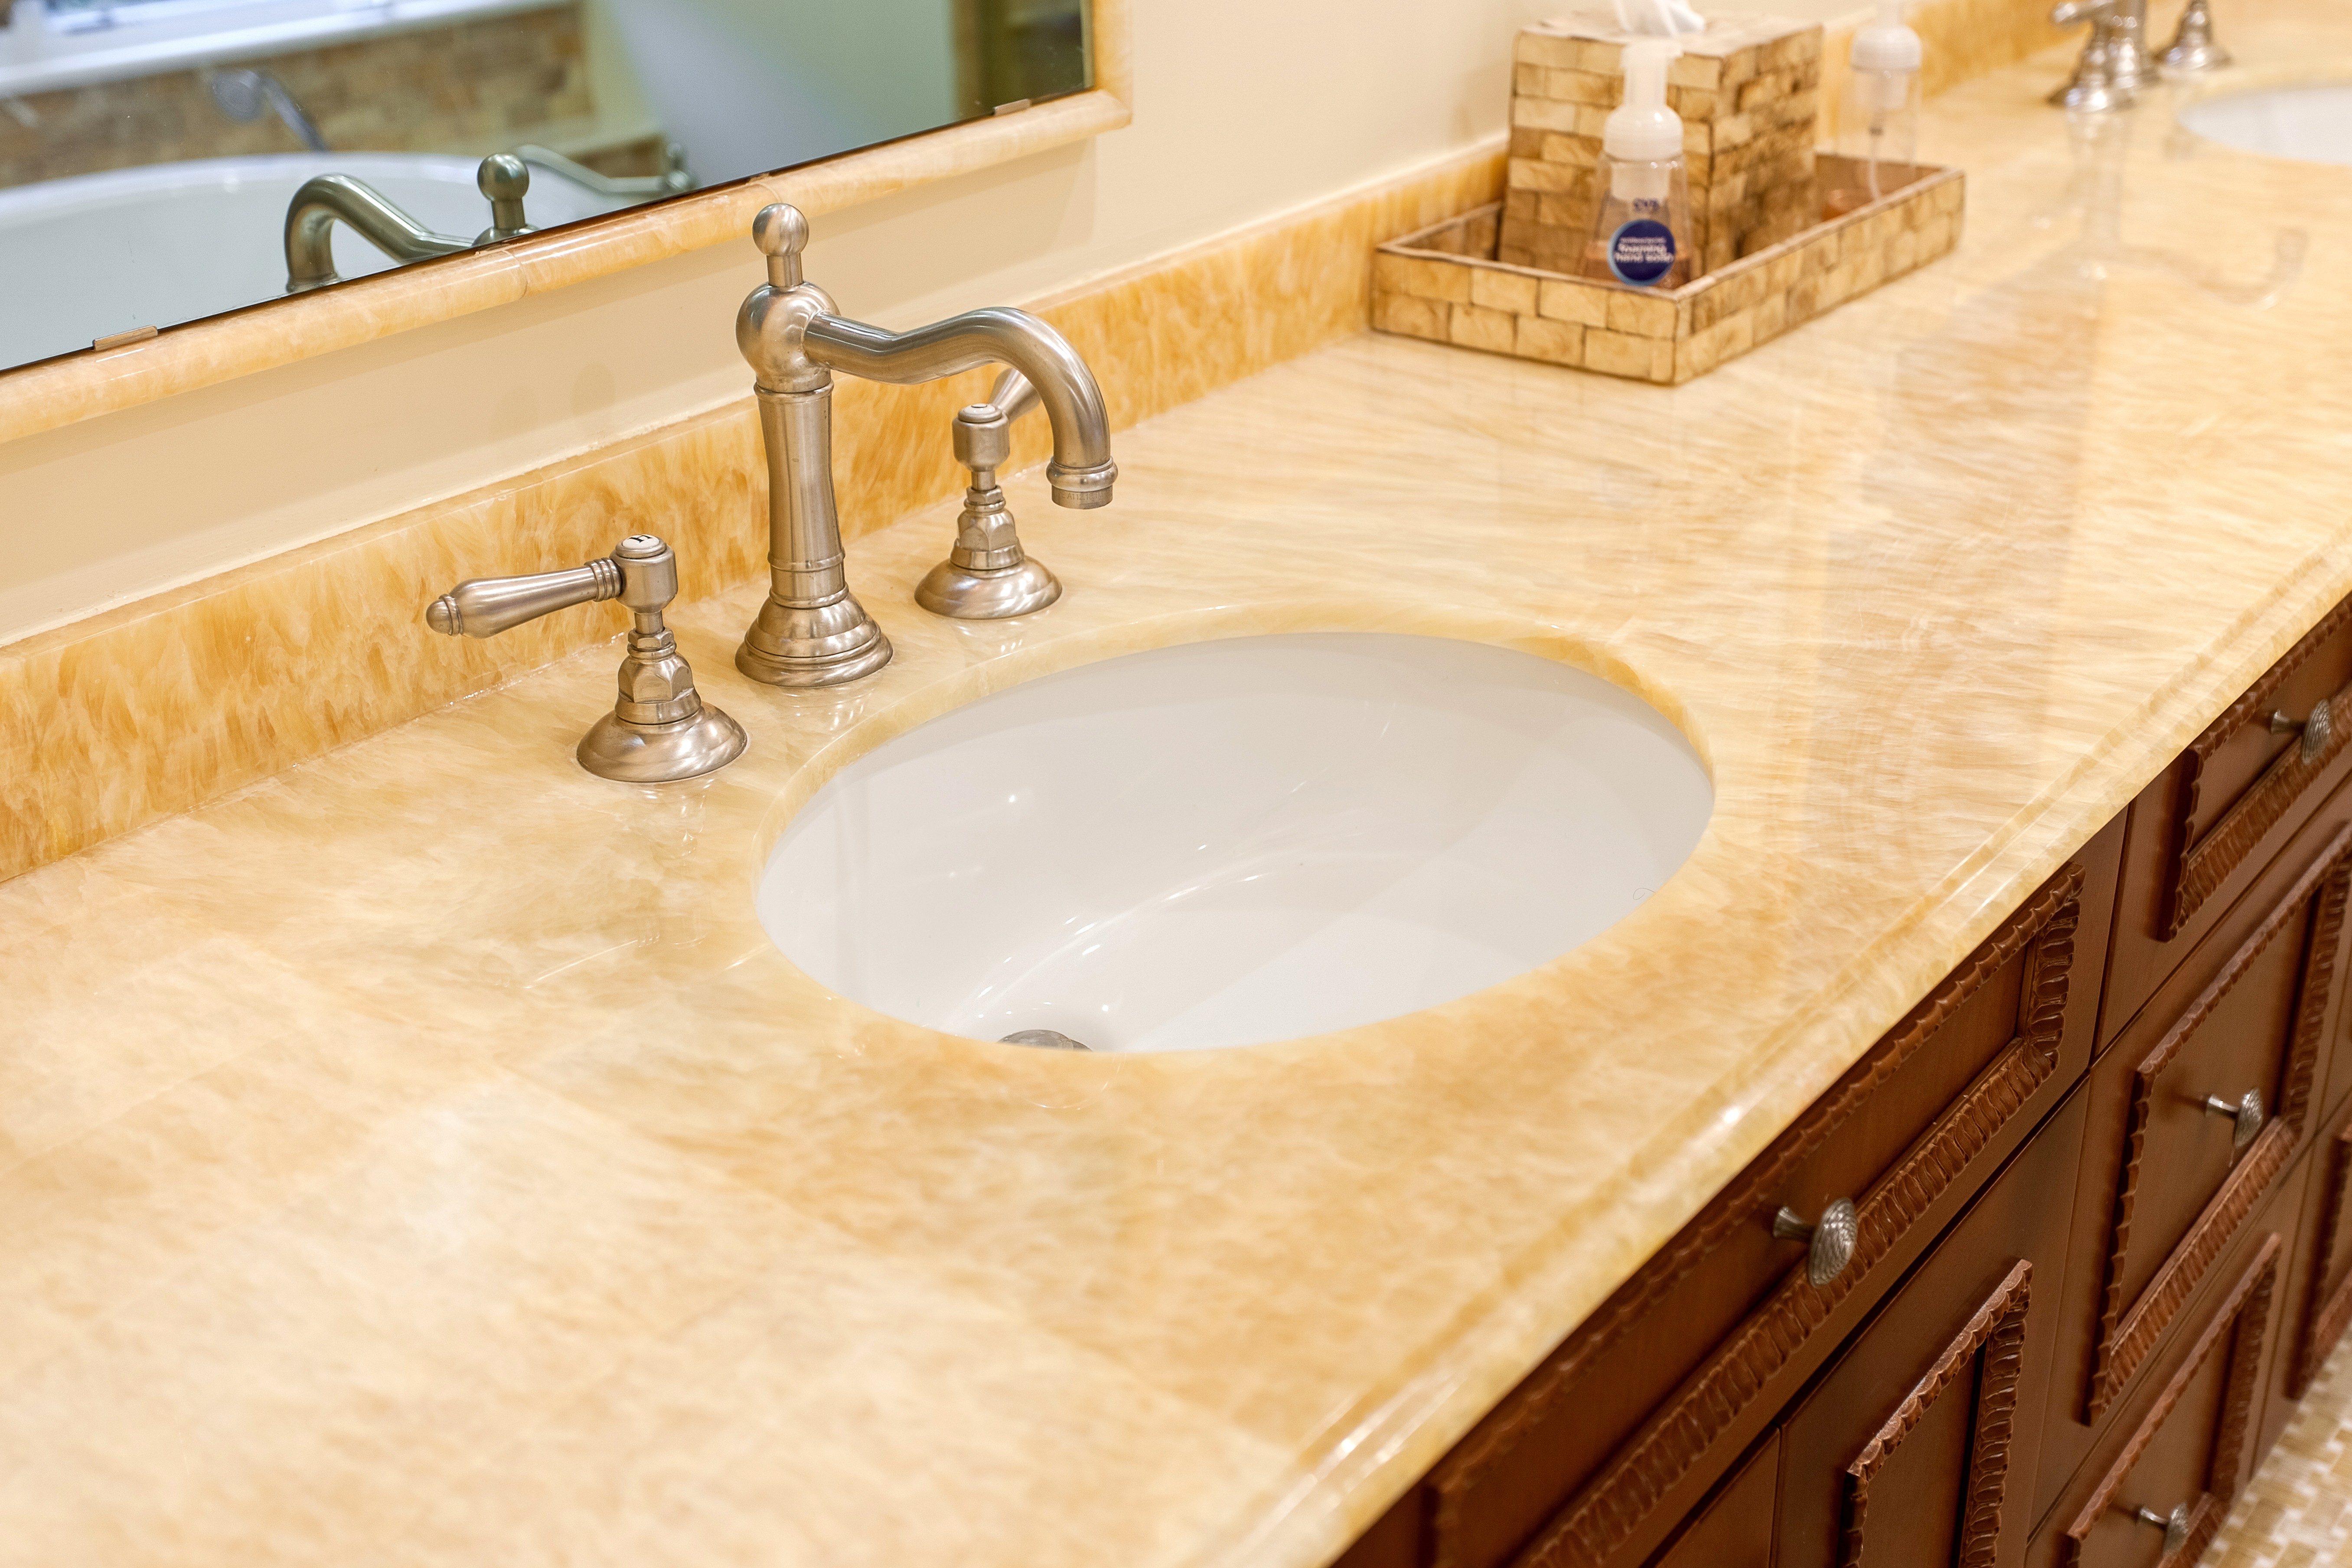 How to remove stains from countertops bathroom - Onyx Is An Amazingly Dramatic Stone That S Commonly Available In Pastel Colors With Swirling Patterns Onyx Is Often Backlit Because Of Its Translucence